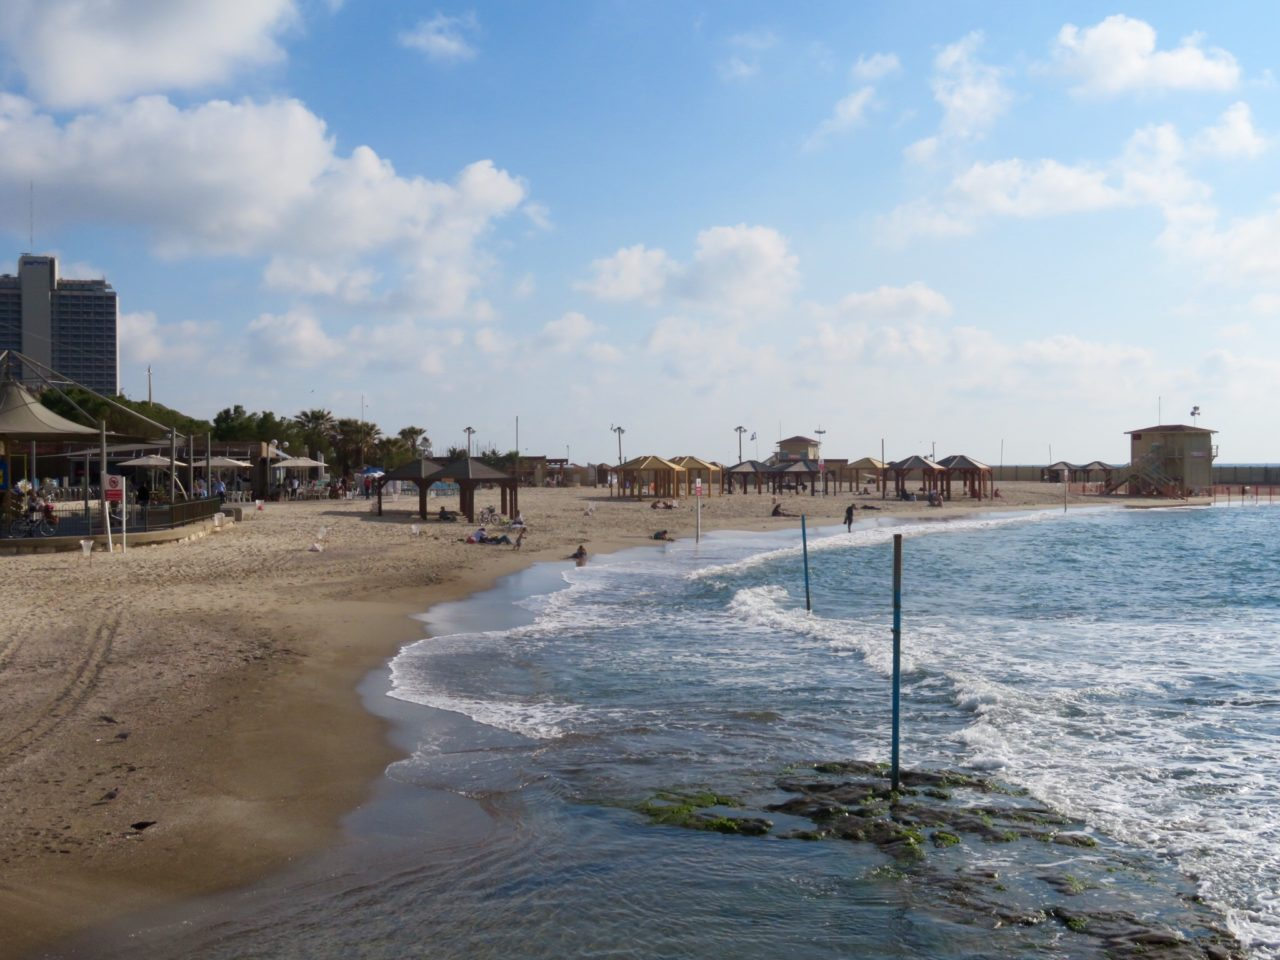 Tel Aviv Beach : The Metzitzim Beach, just south of the Old Port of Tel Aviv